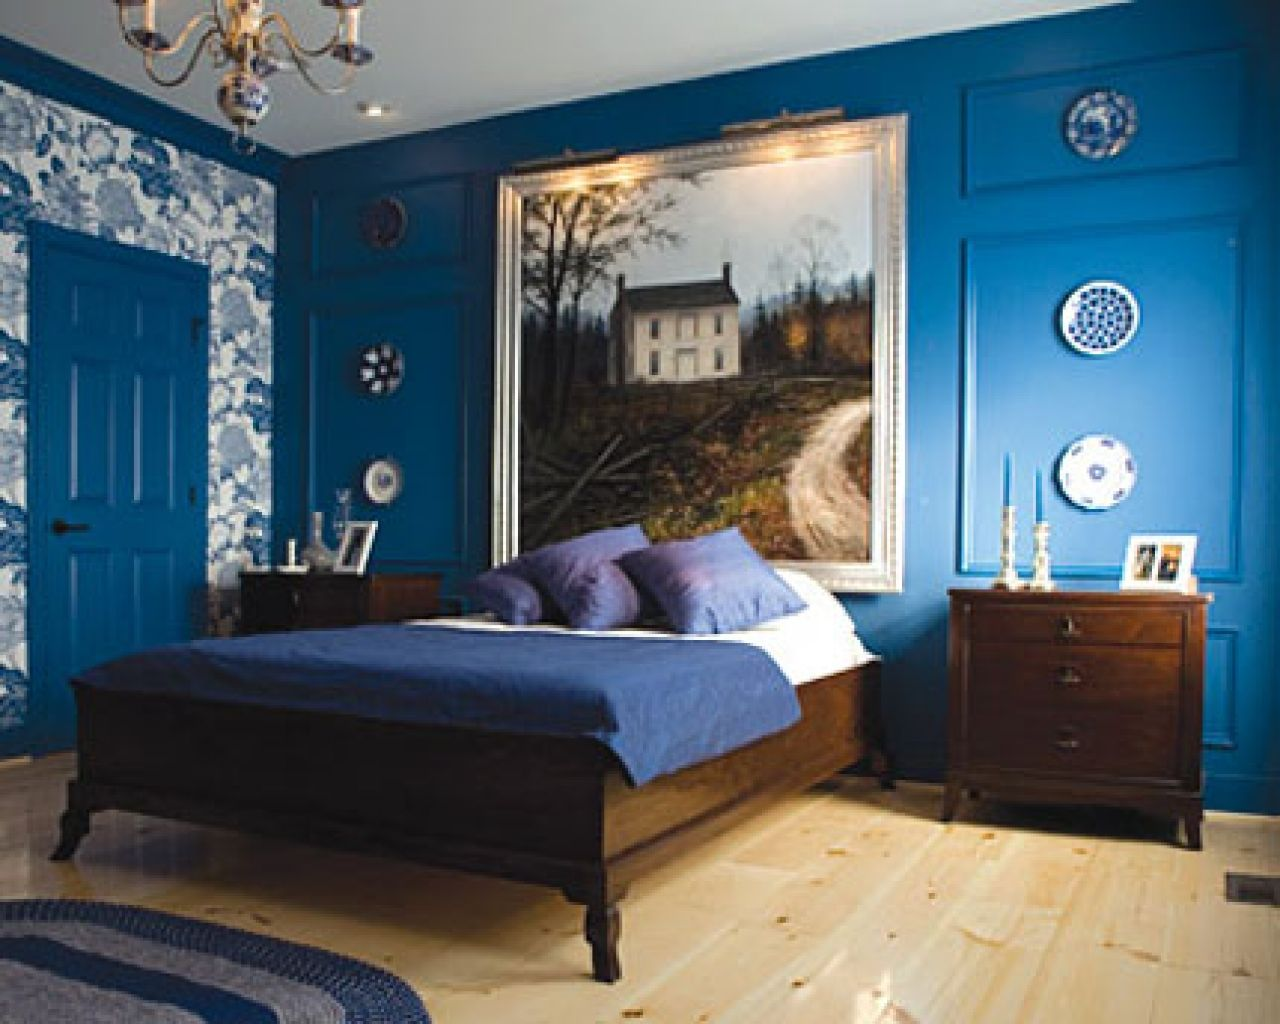 Bedroom painting design ideas pretty natural bedroom paint Cute bedroom wall ideas